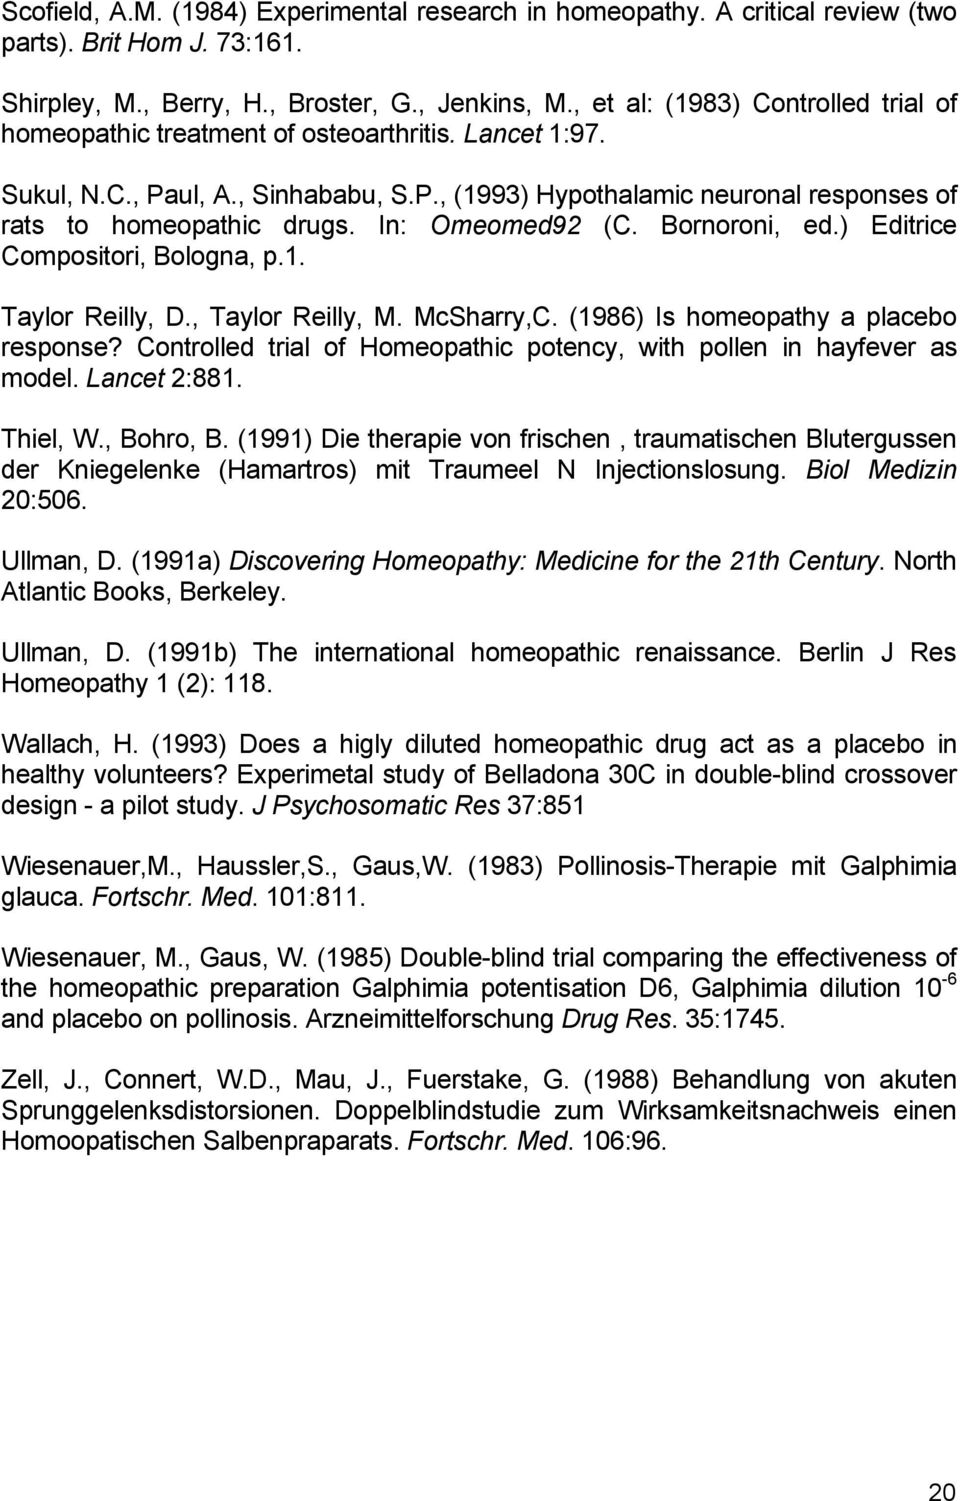 In: Omeomed92 (C. Bornoroni, ed.) Editrice Compositori, Bologna, p.1. Taylor Reilly, D., Taylor Reilly, M. McSharry,C. (1986) Is homeopathy a placebo response?